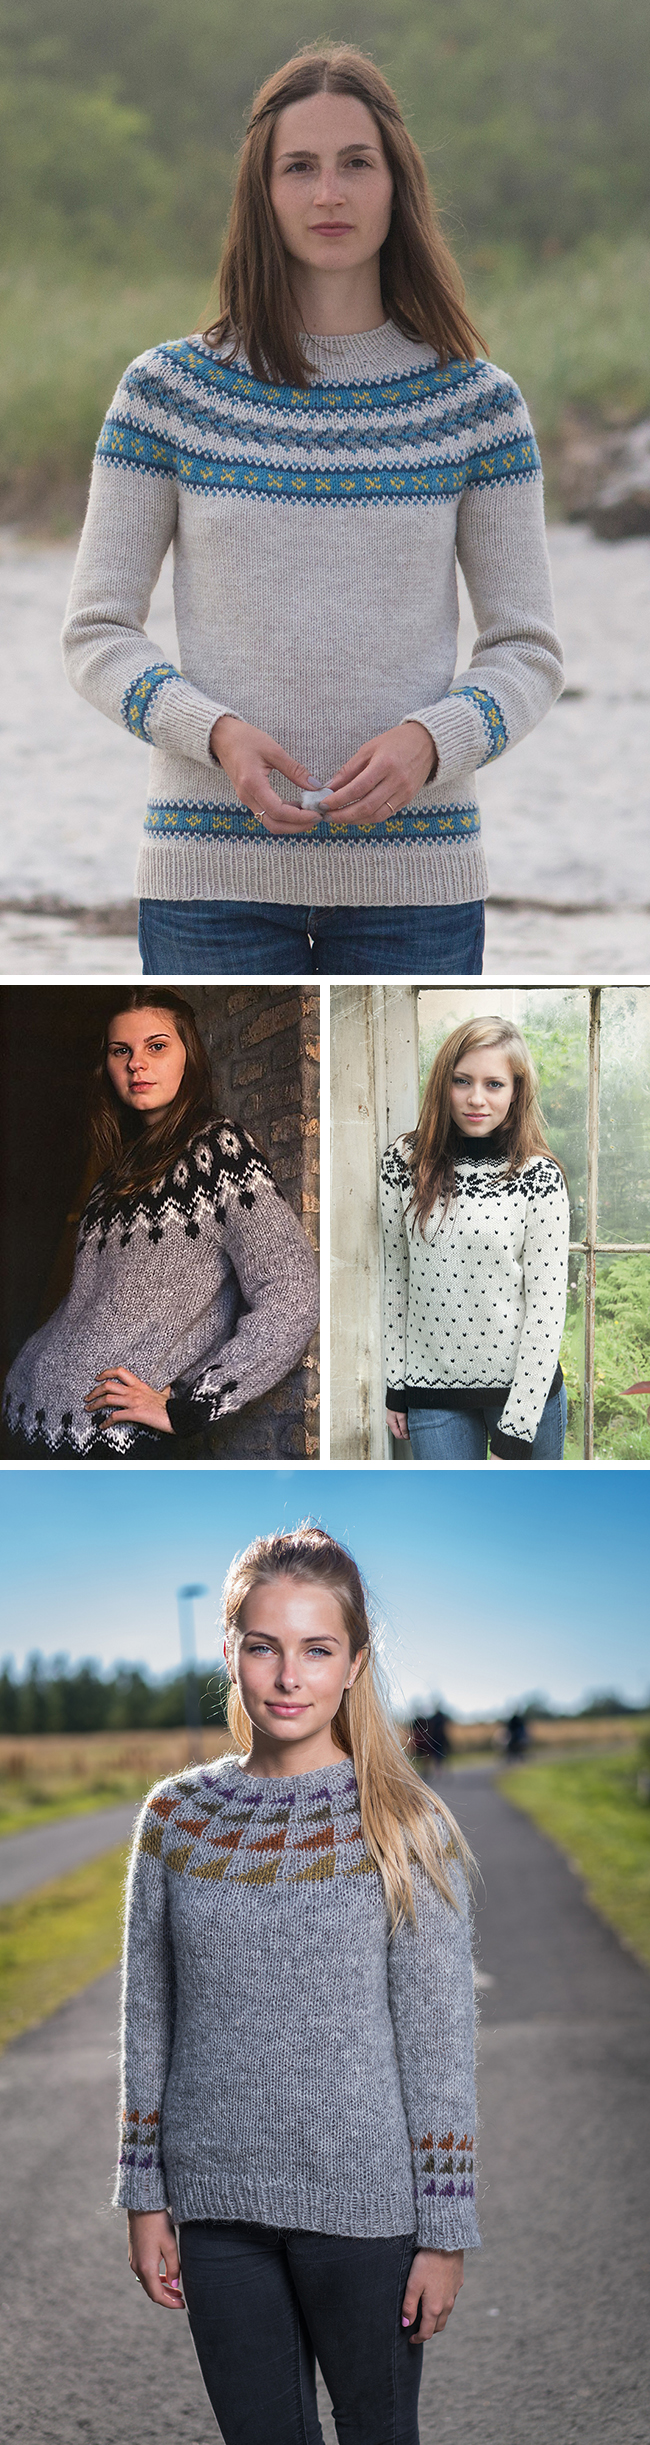 Make Your Own Basics: The ski sweater